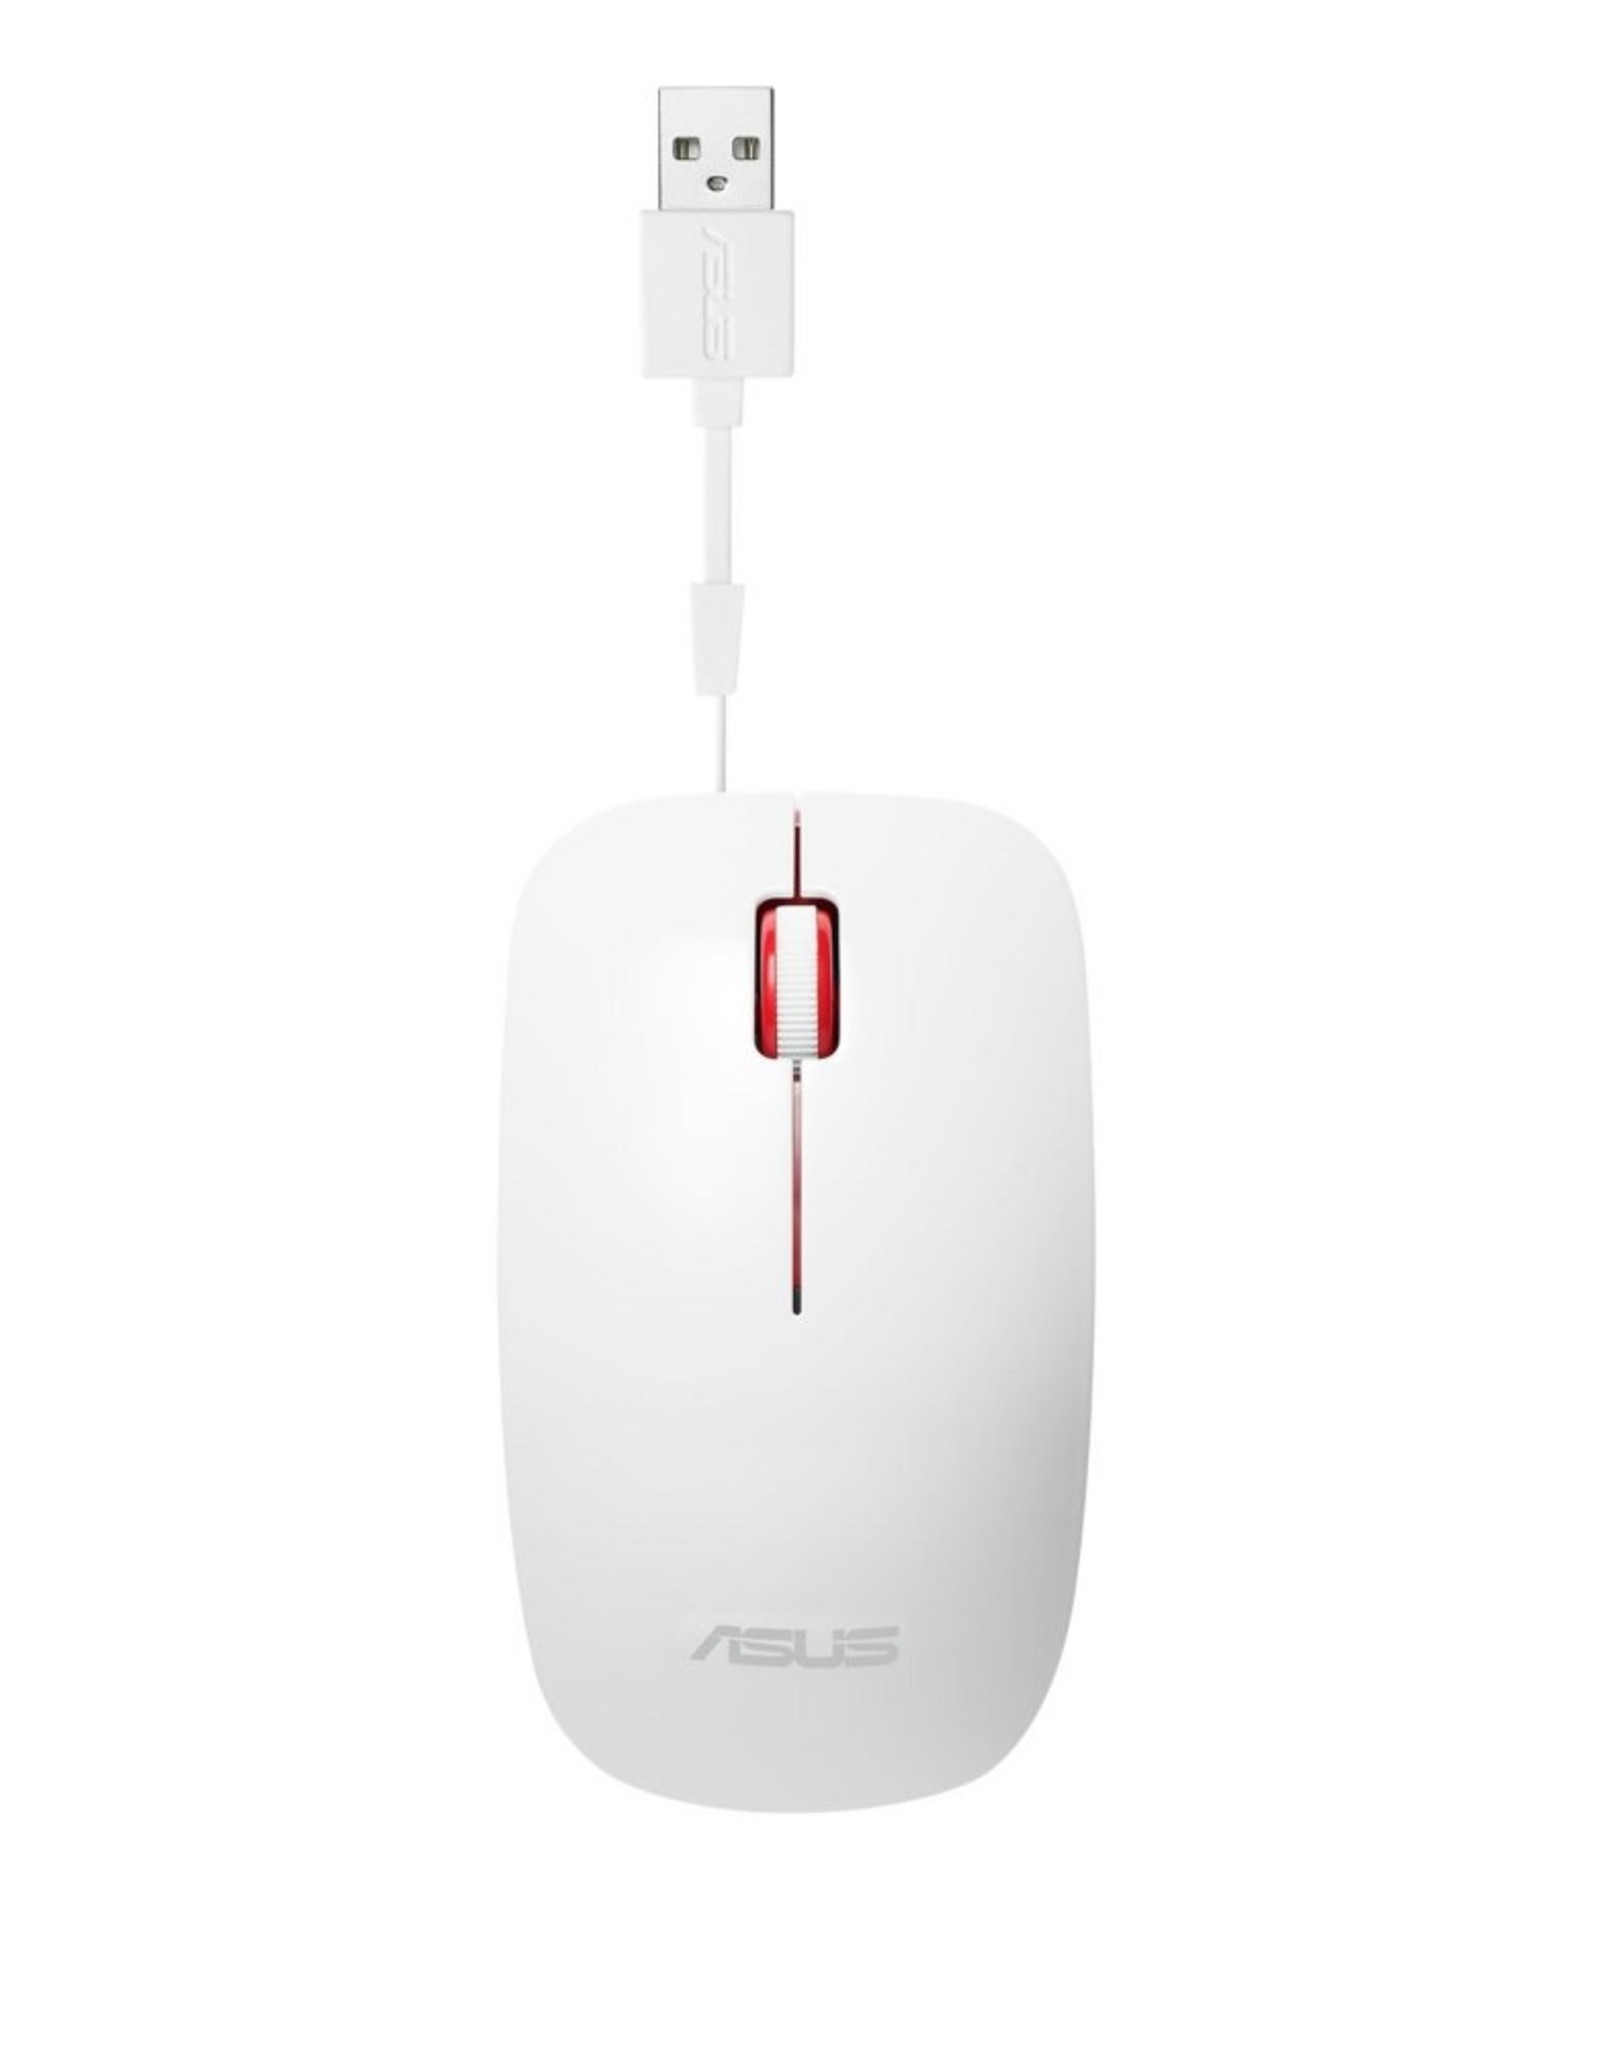 Asus ASUS UT300 muis USB Type-A Optisch 1000 DPI White / Red